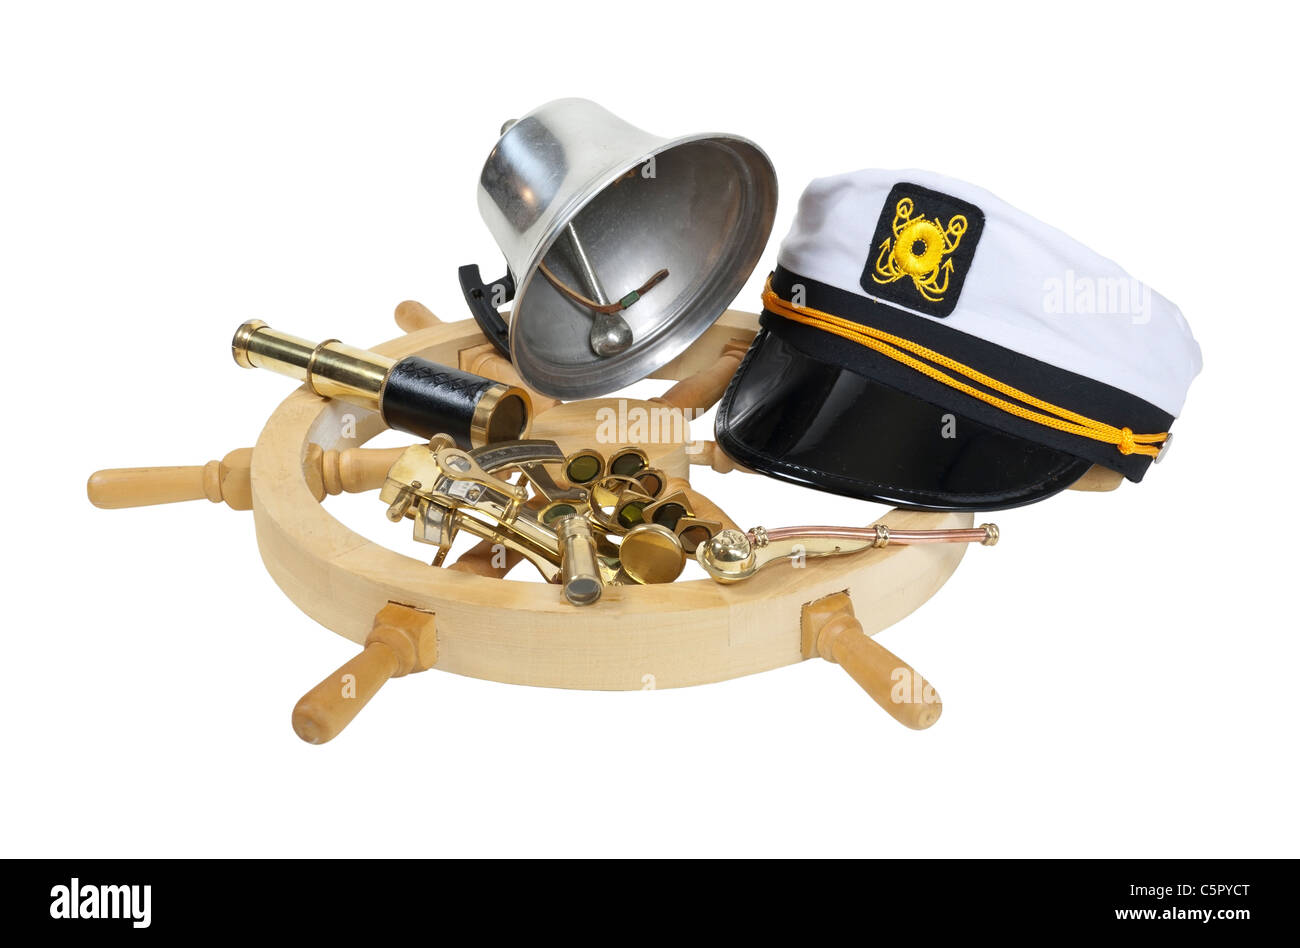 Nautical supplies including ship wheel, captain hat, bell, and an assortment of brass instruments - path included - Stock Image